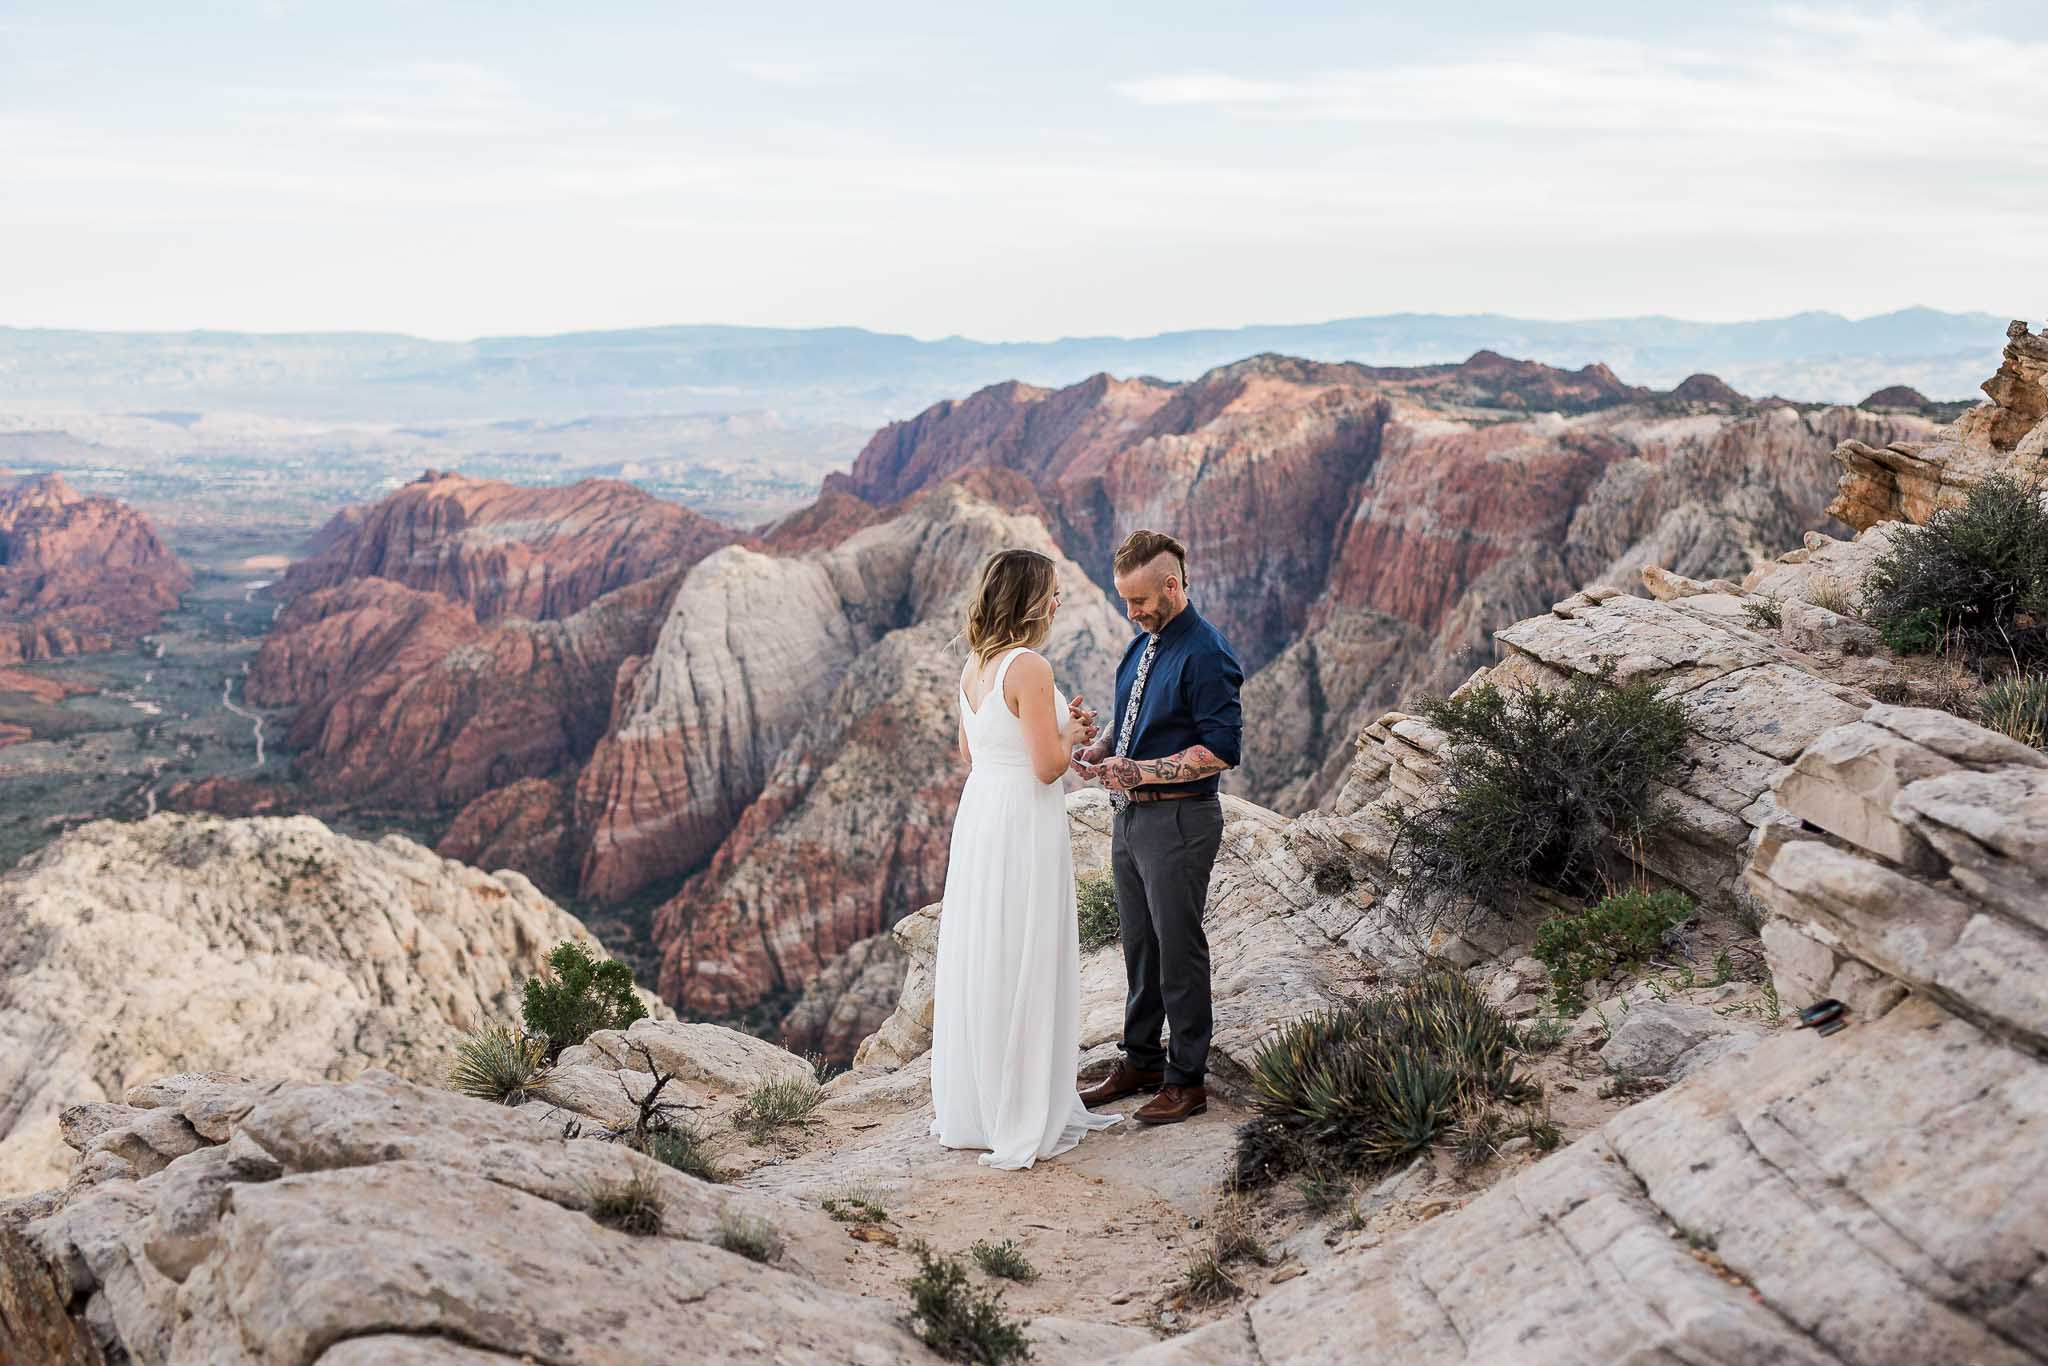 Couple renew wedding vows overlooking Snow Canyon State Park, Utah